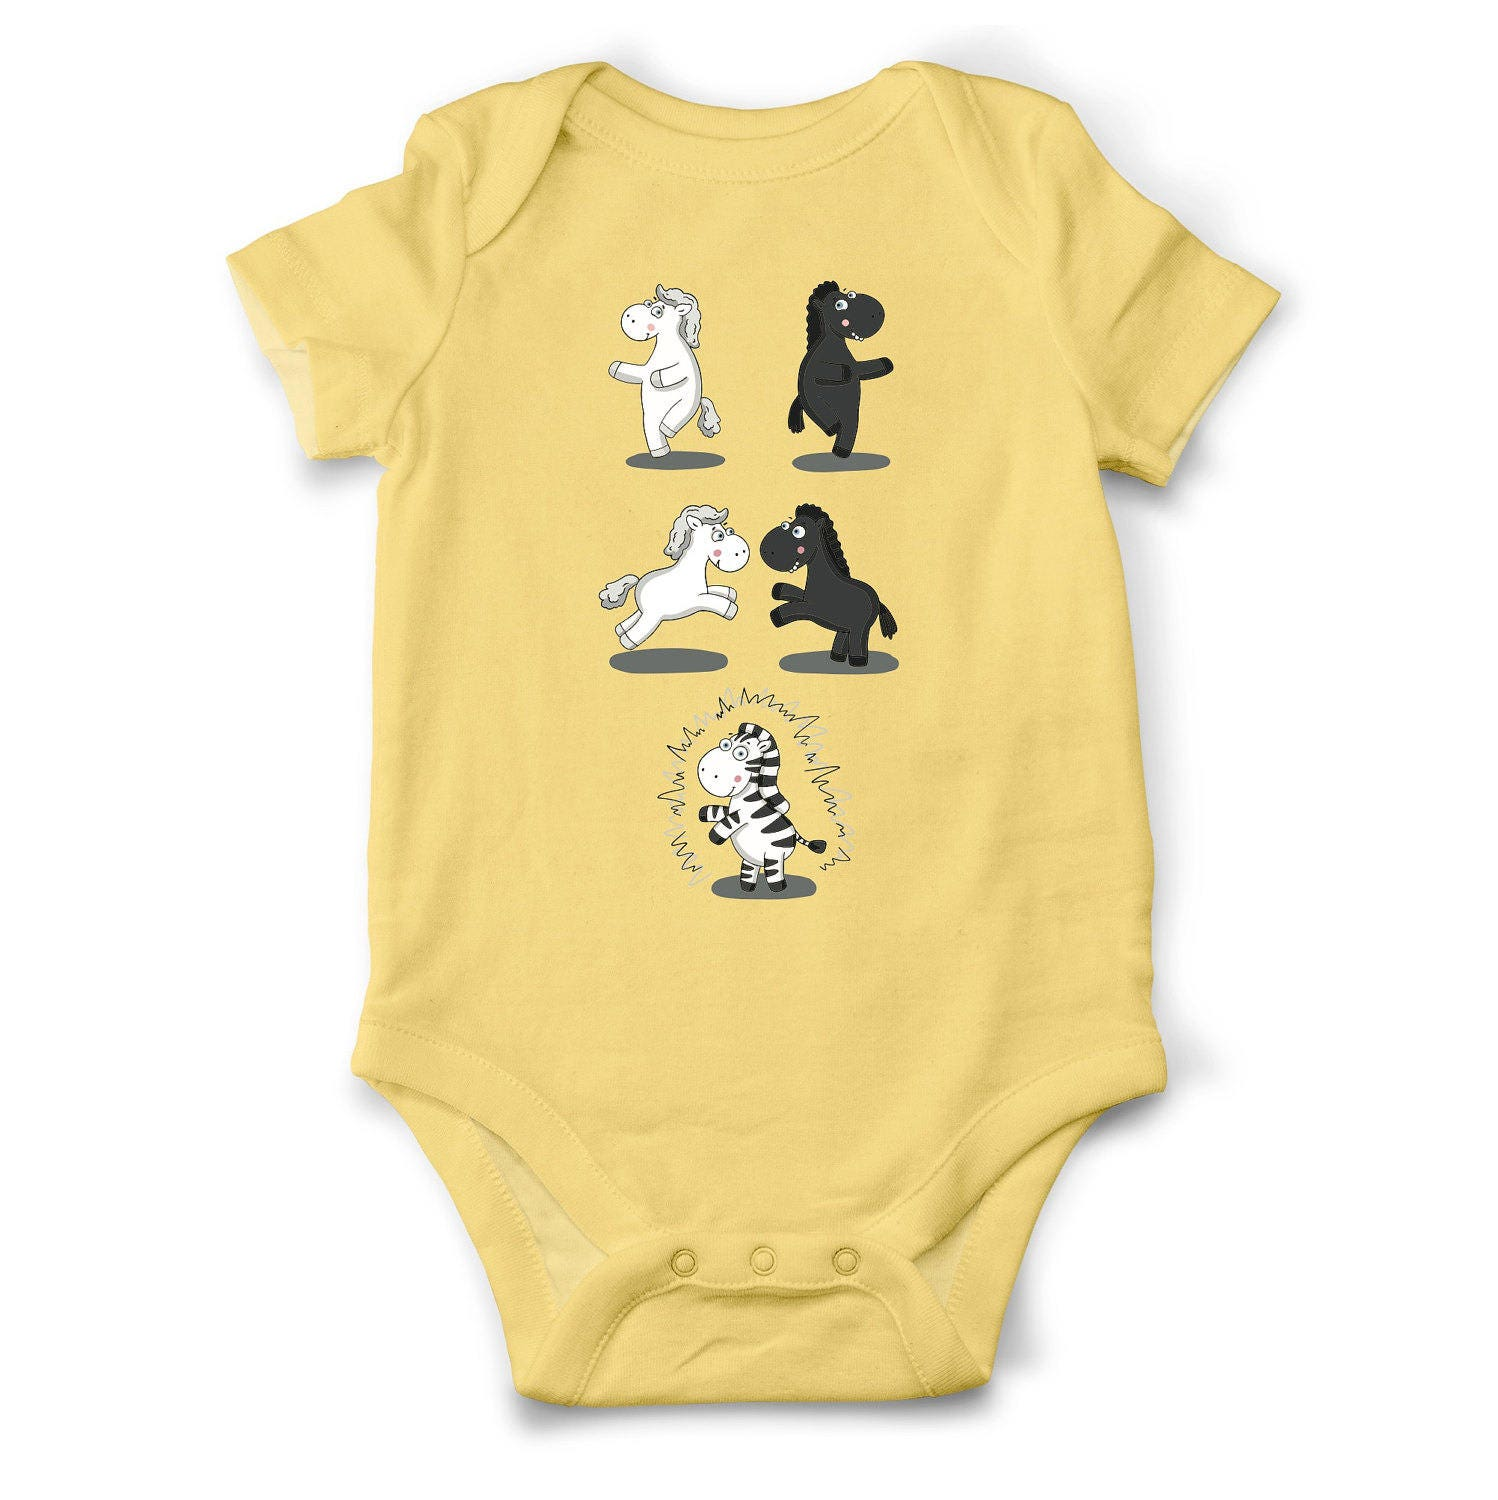 Funny Baby Onesie Clothes Boy